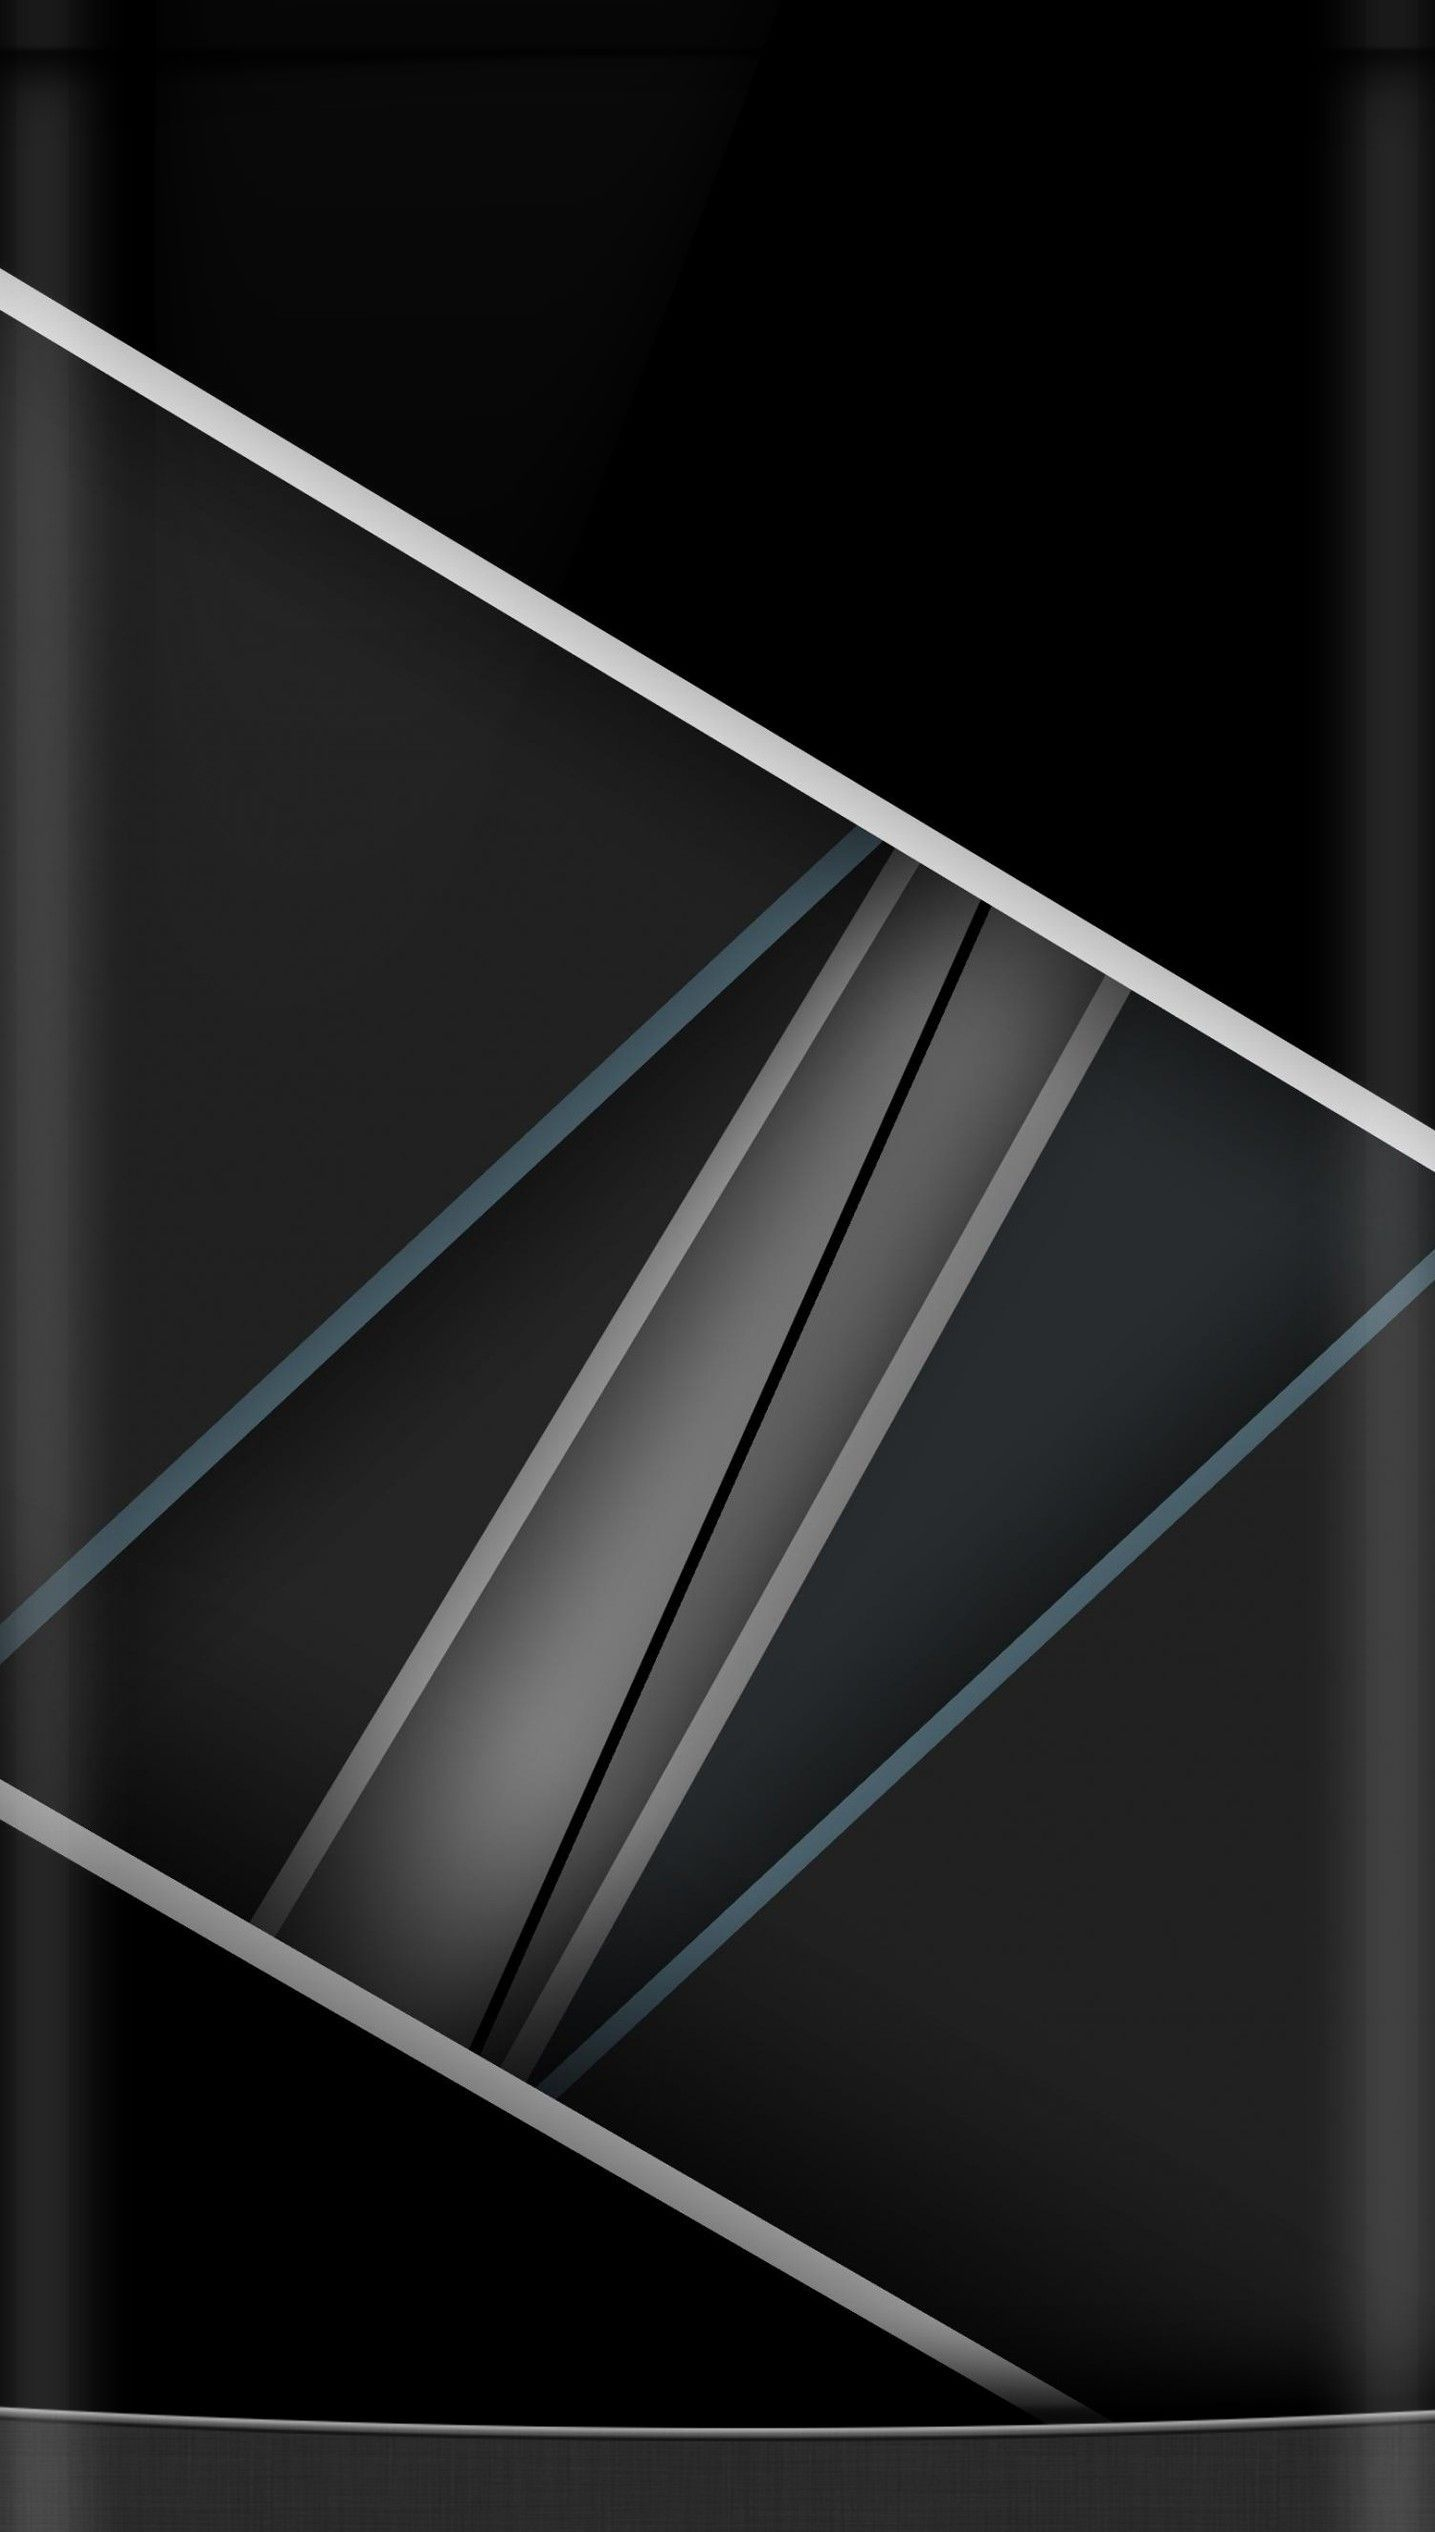 Black And Grey Abstract Wallpaper Cellphone Wallpaper Phone Wallpaper Phone Screen Wallpaper